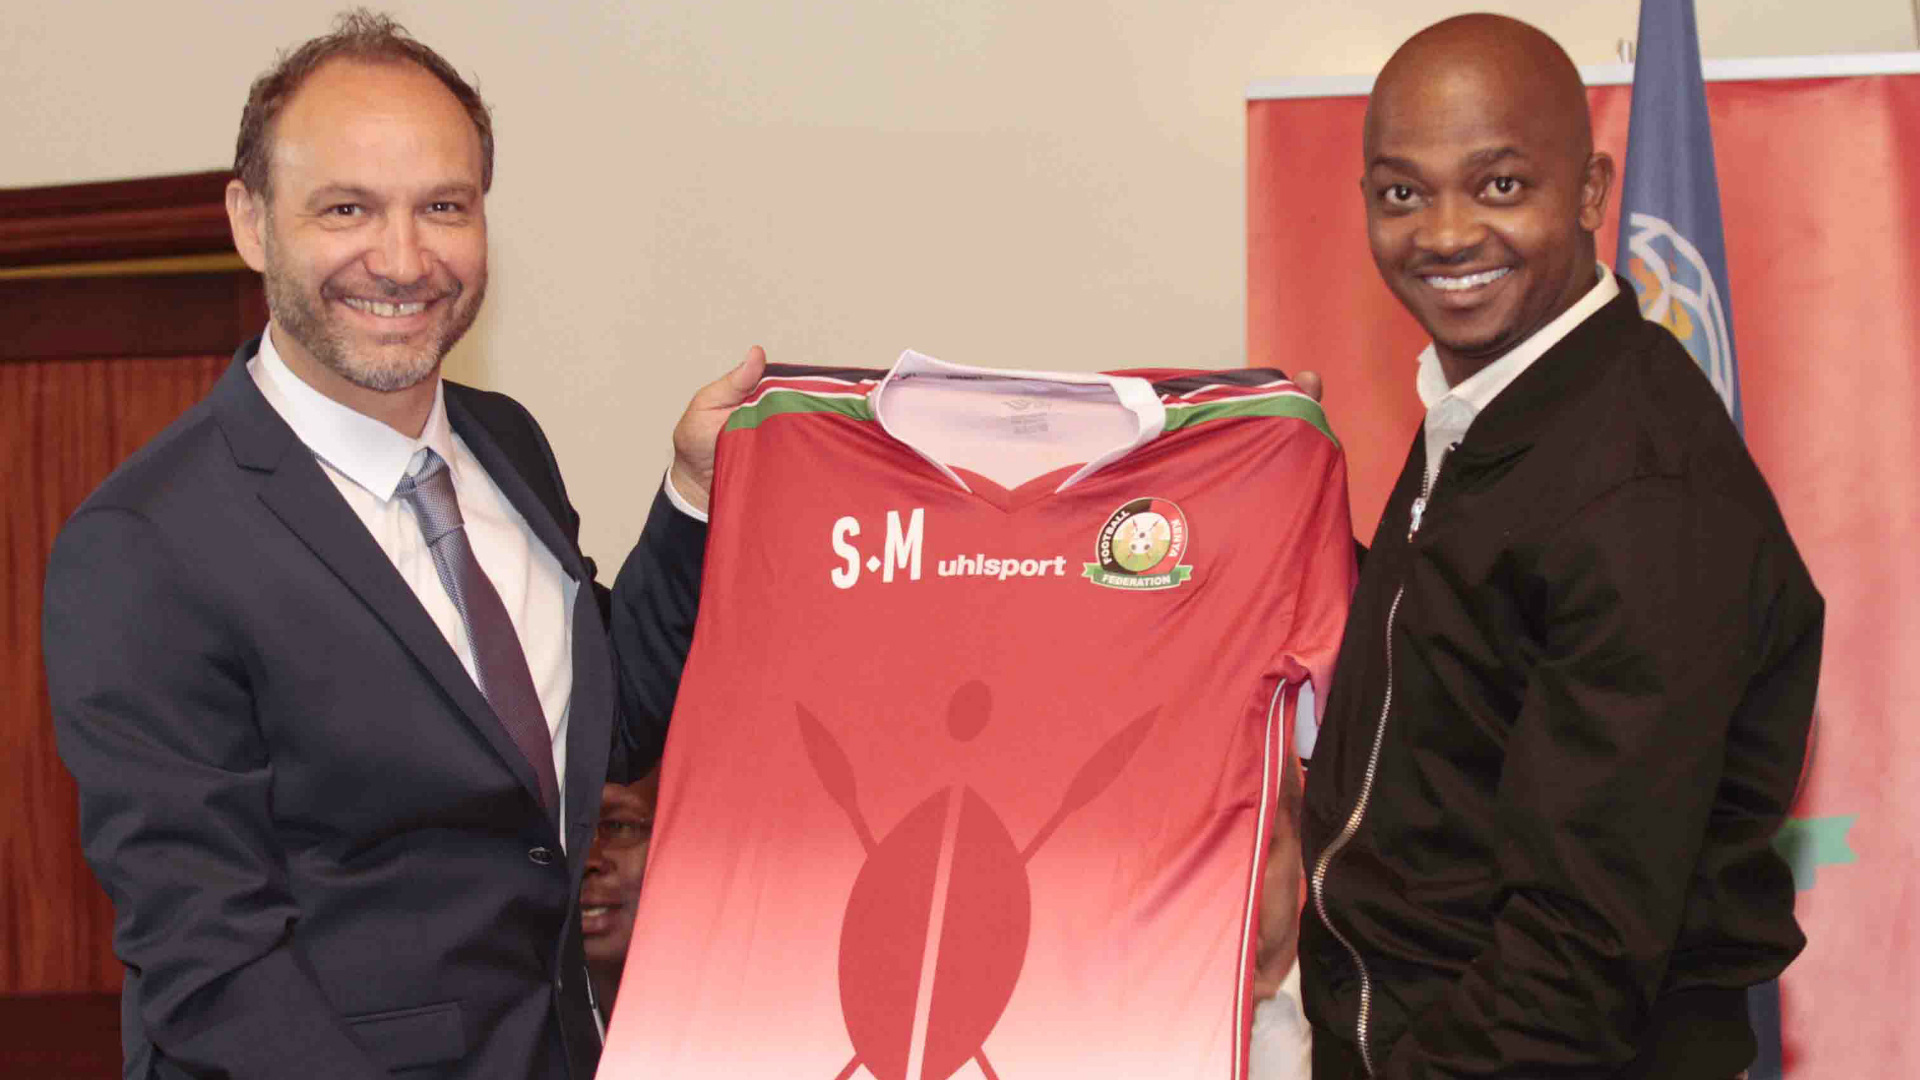 'Kudos to Nick Mwendwa!' – Kenyans' react as Harambee Stars arrive in style for Afcon